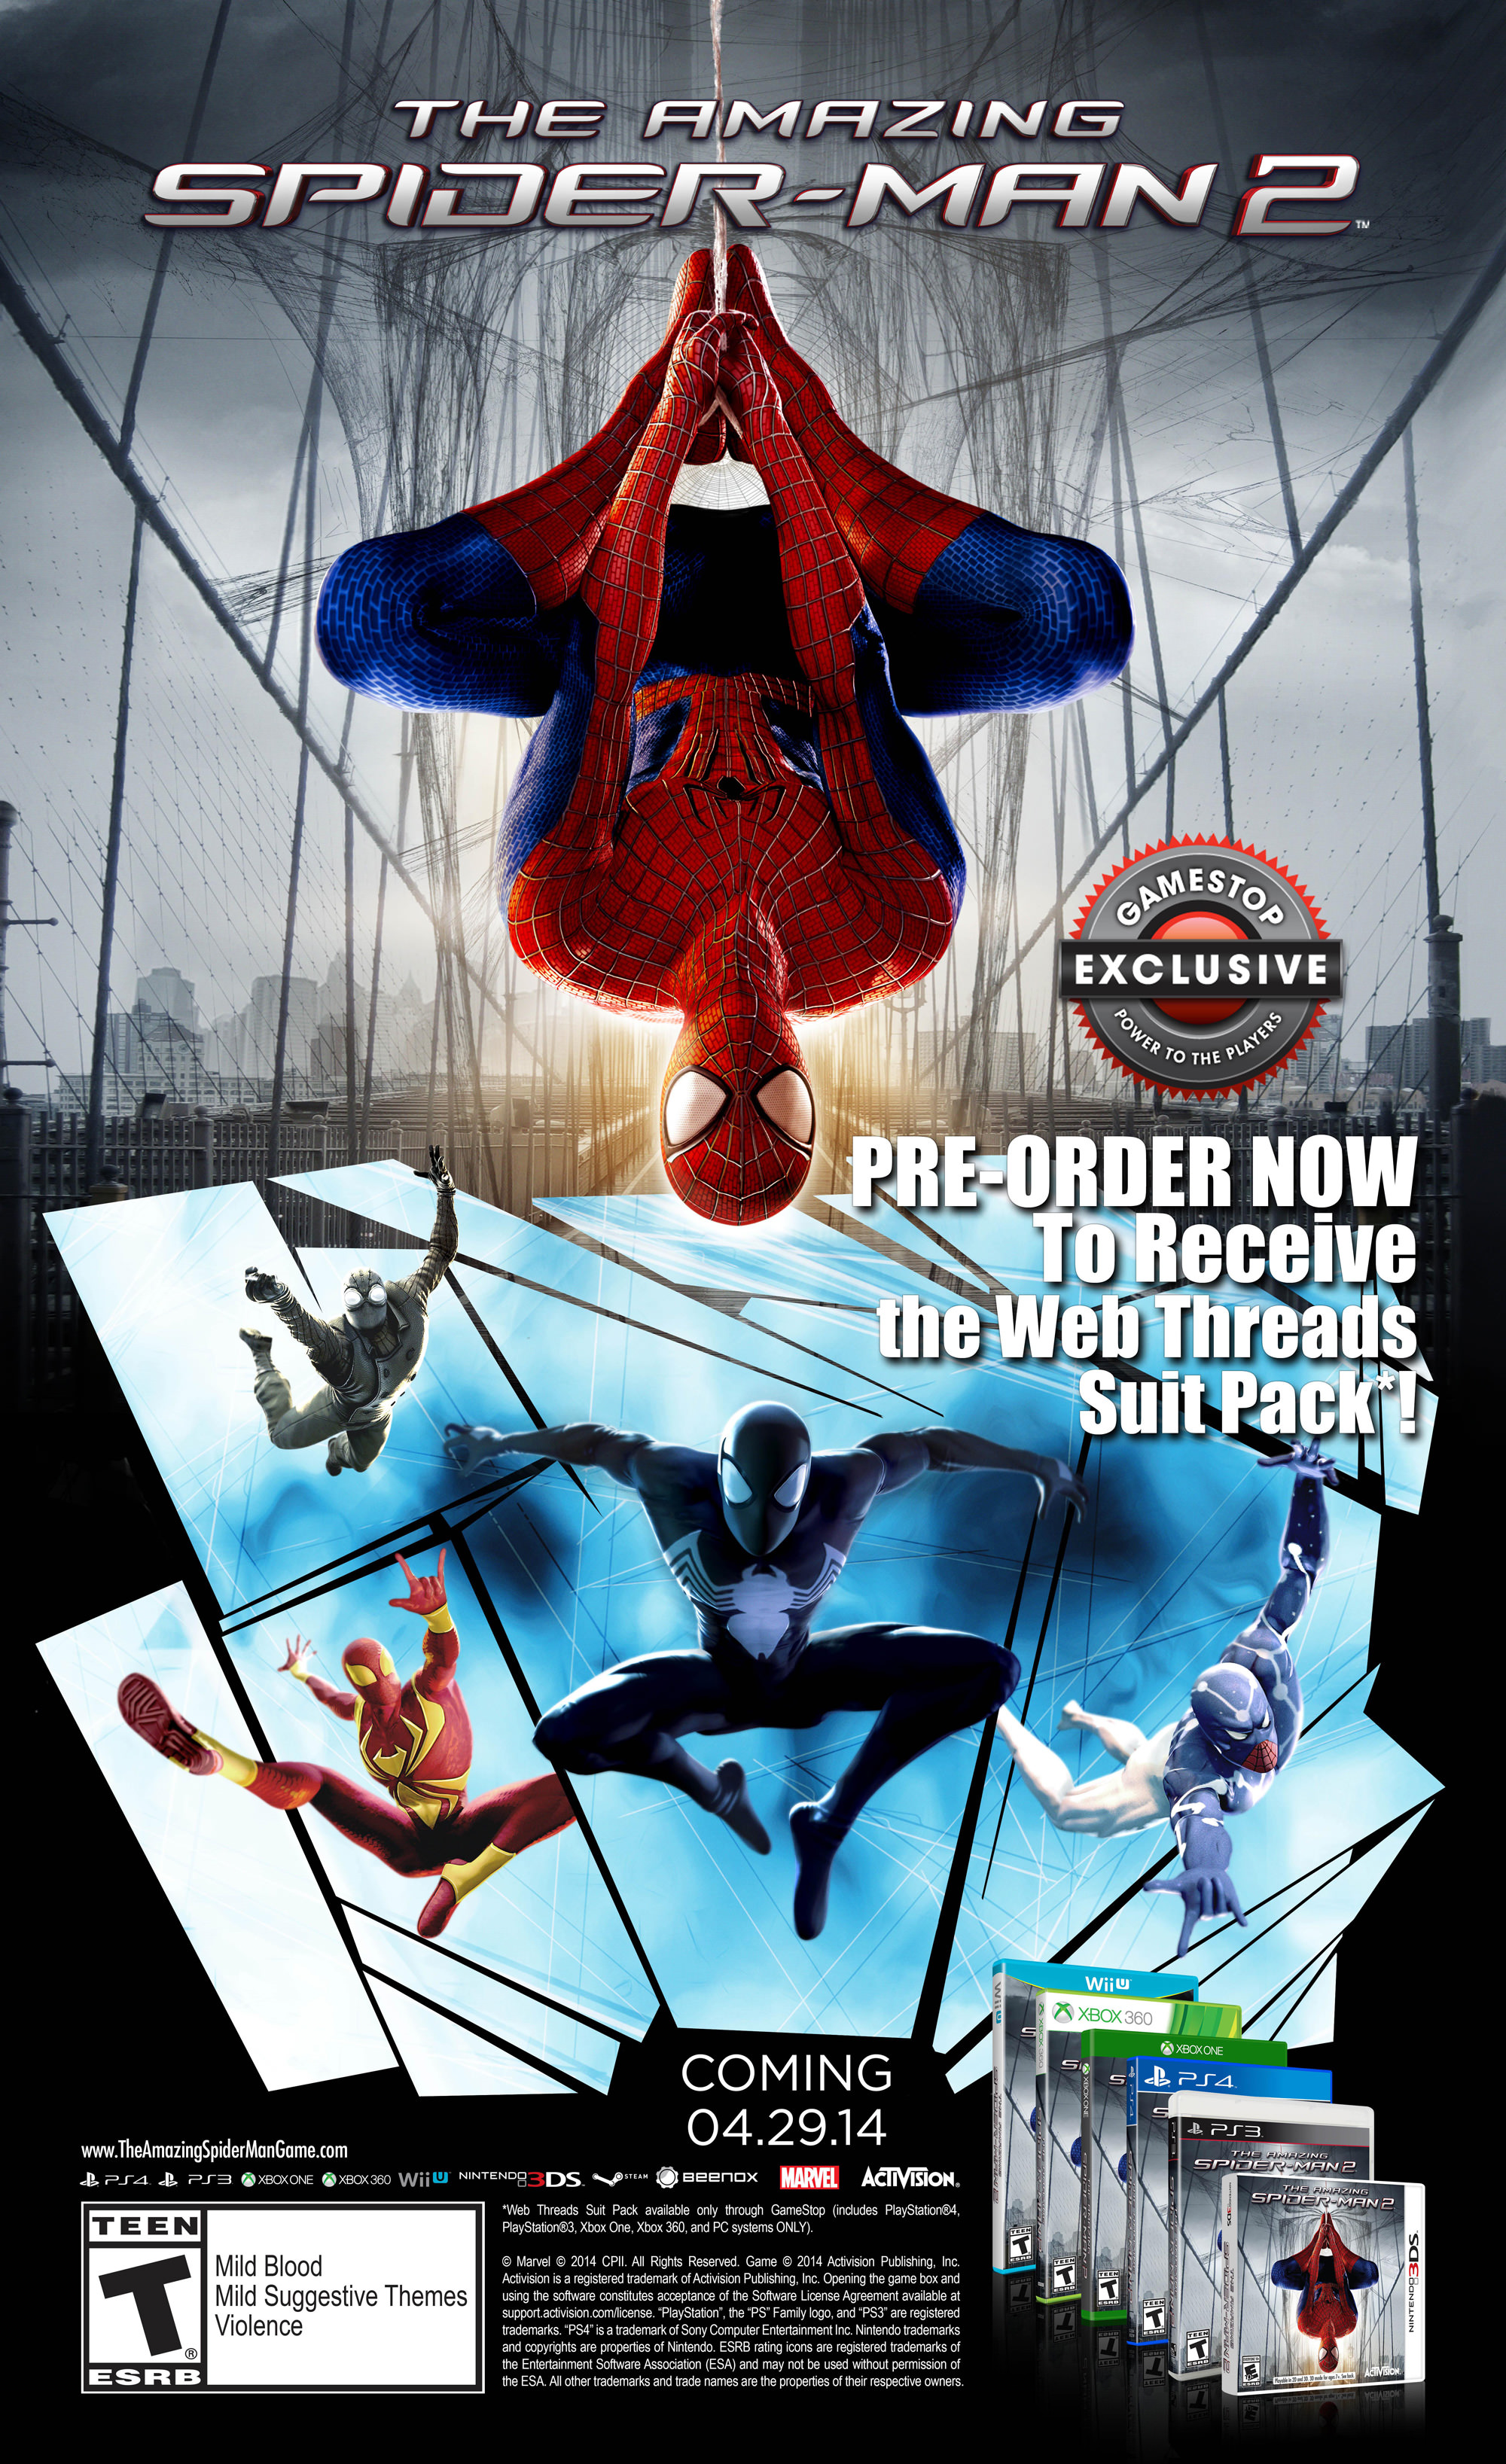 The Amazing Spider Man 2 Video Game Release Date And Pre Order Bonuses Revealed Spider Man News